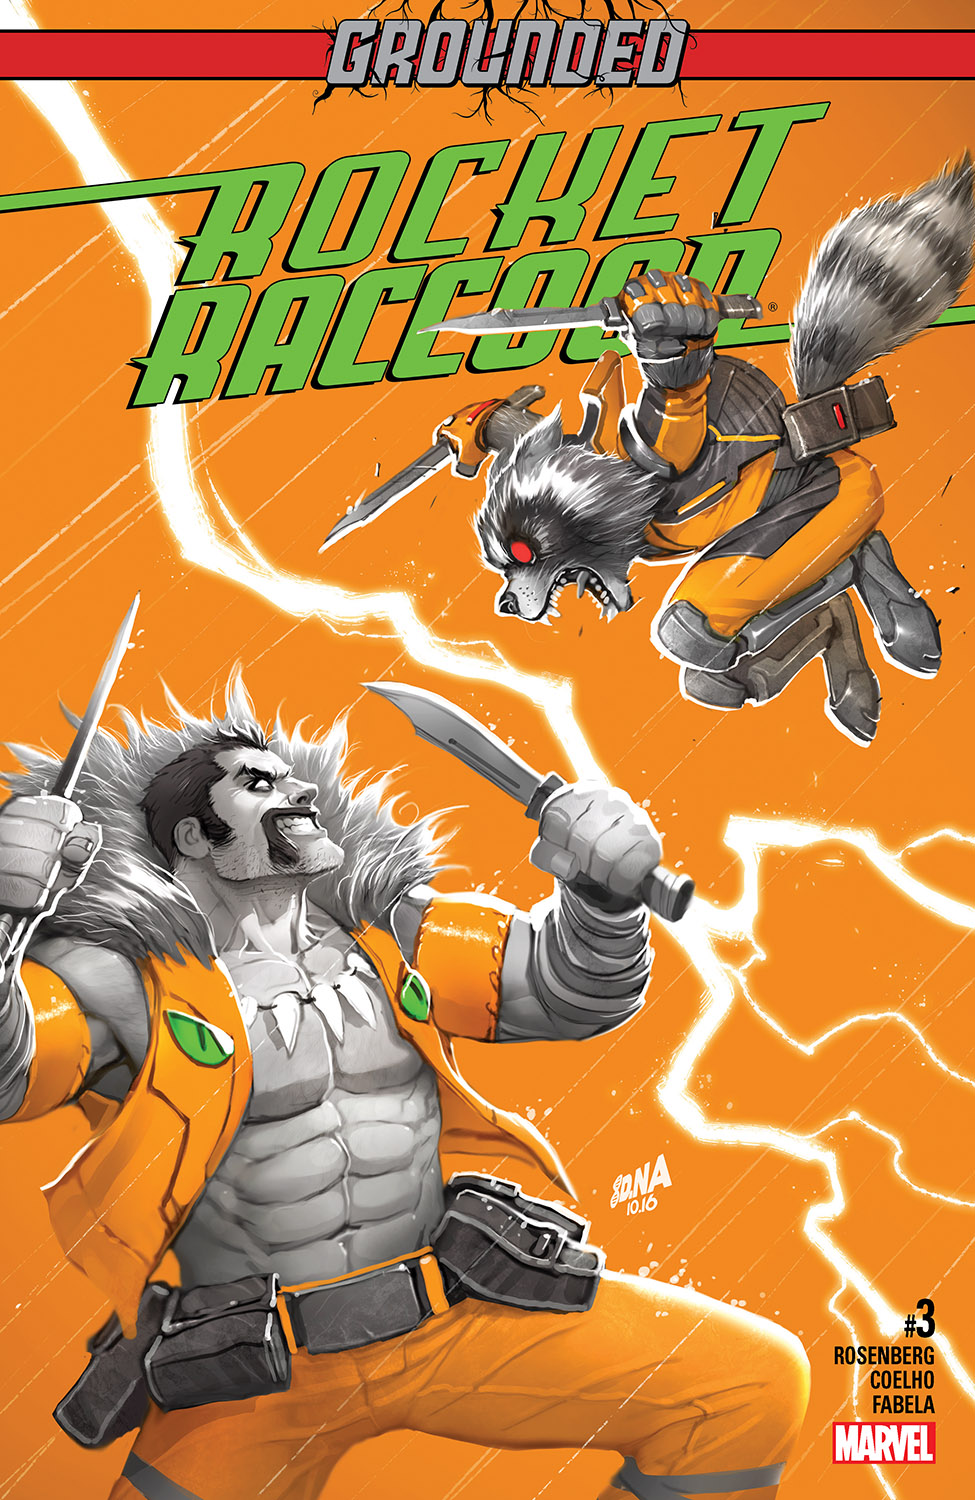 Rocket Raccoon (2016) #3